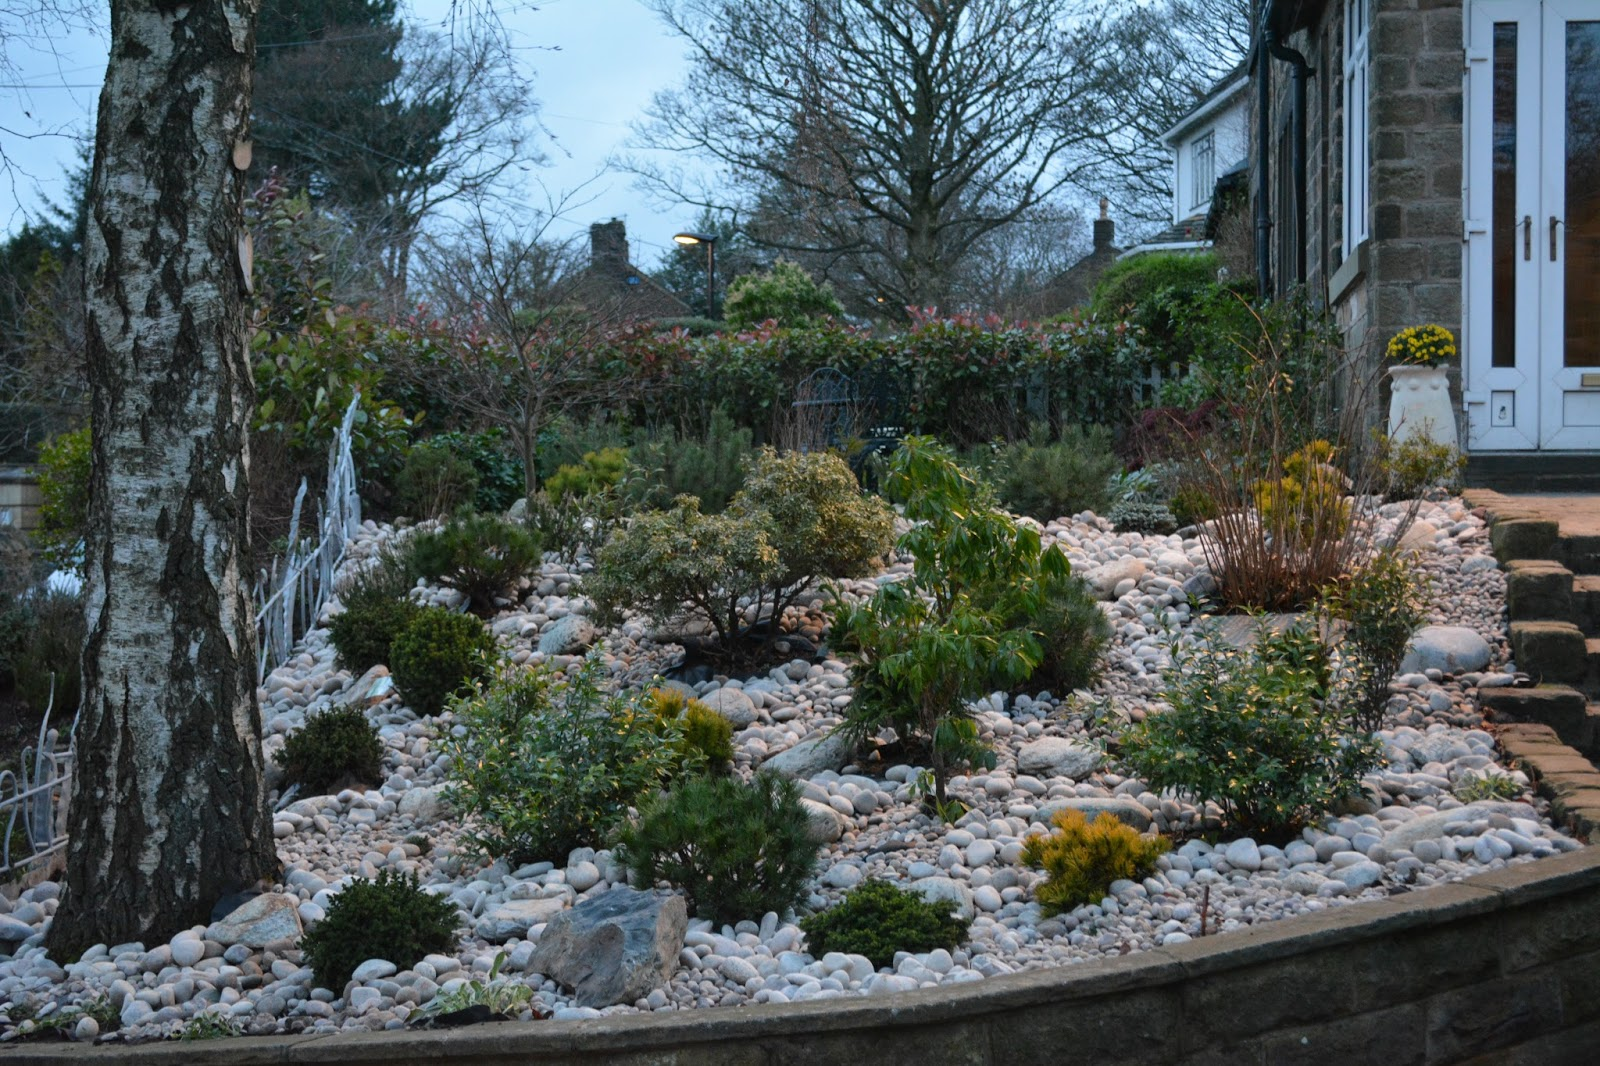 David keegans garden design blog dry river cobble and for Dry garden designs